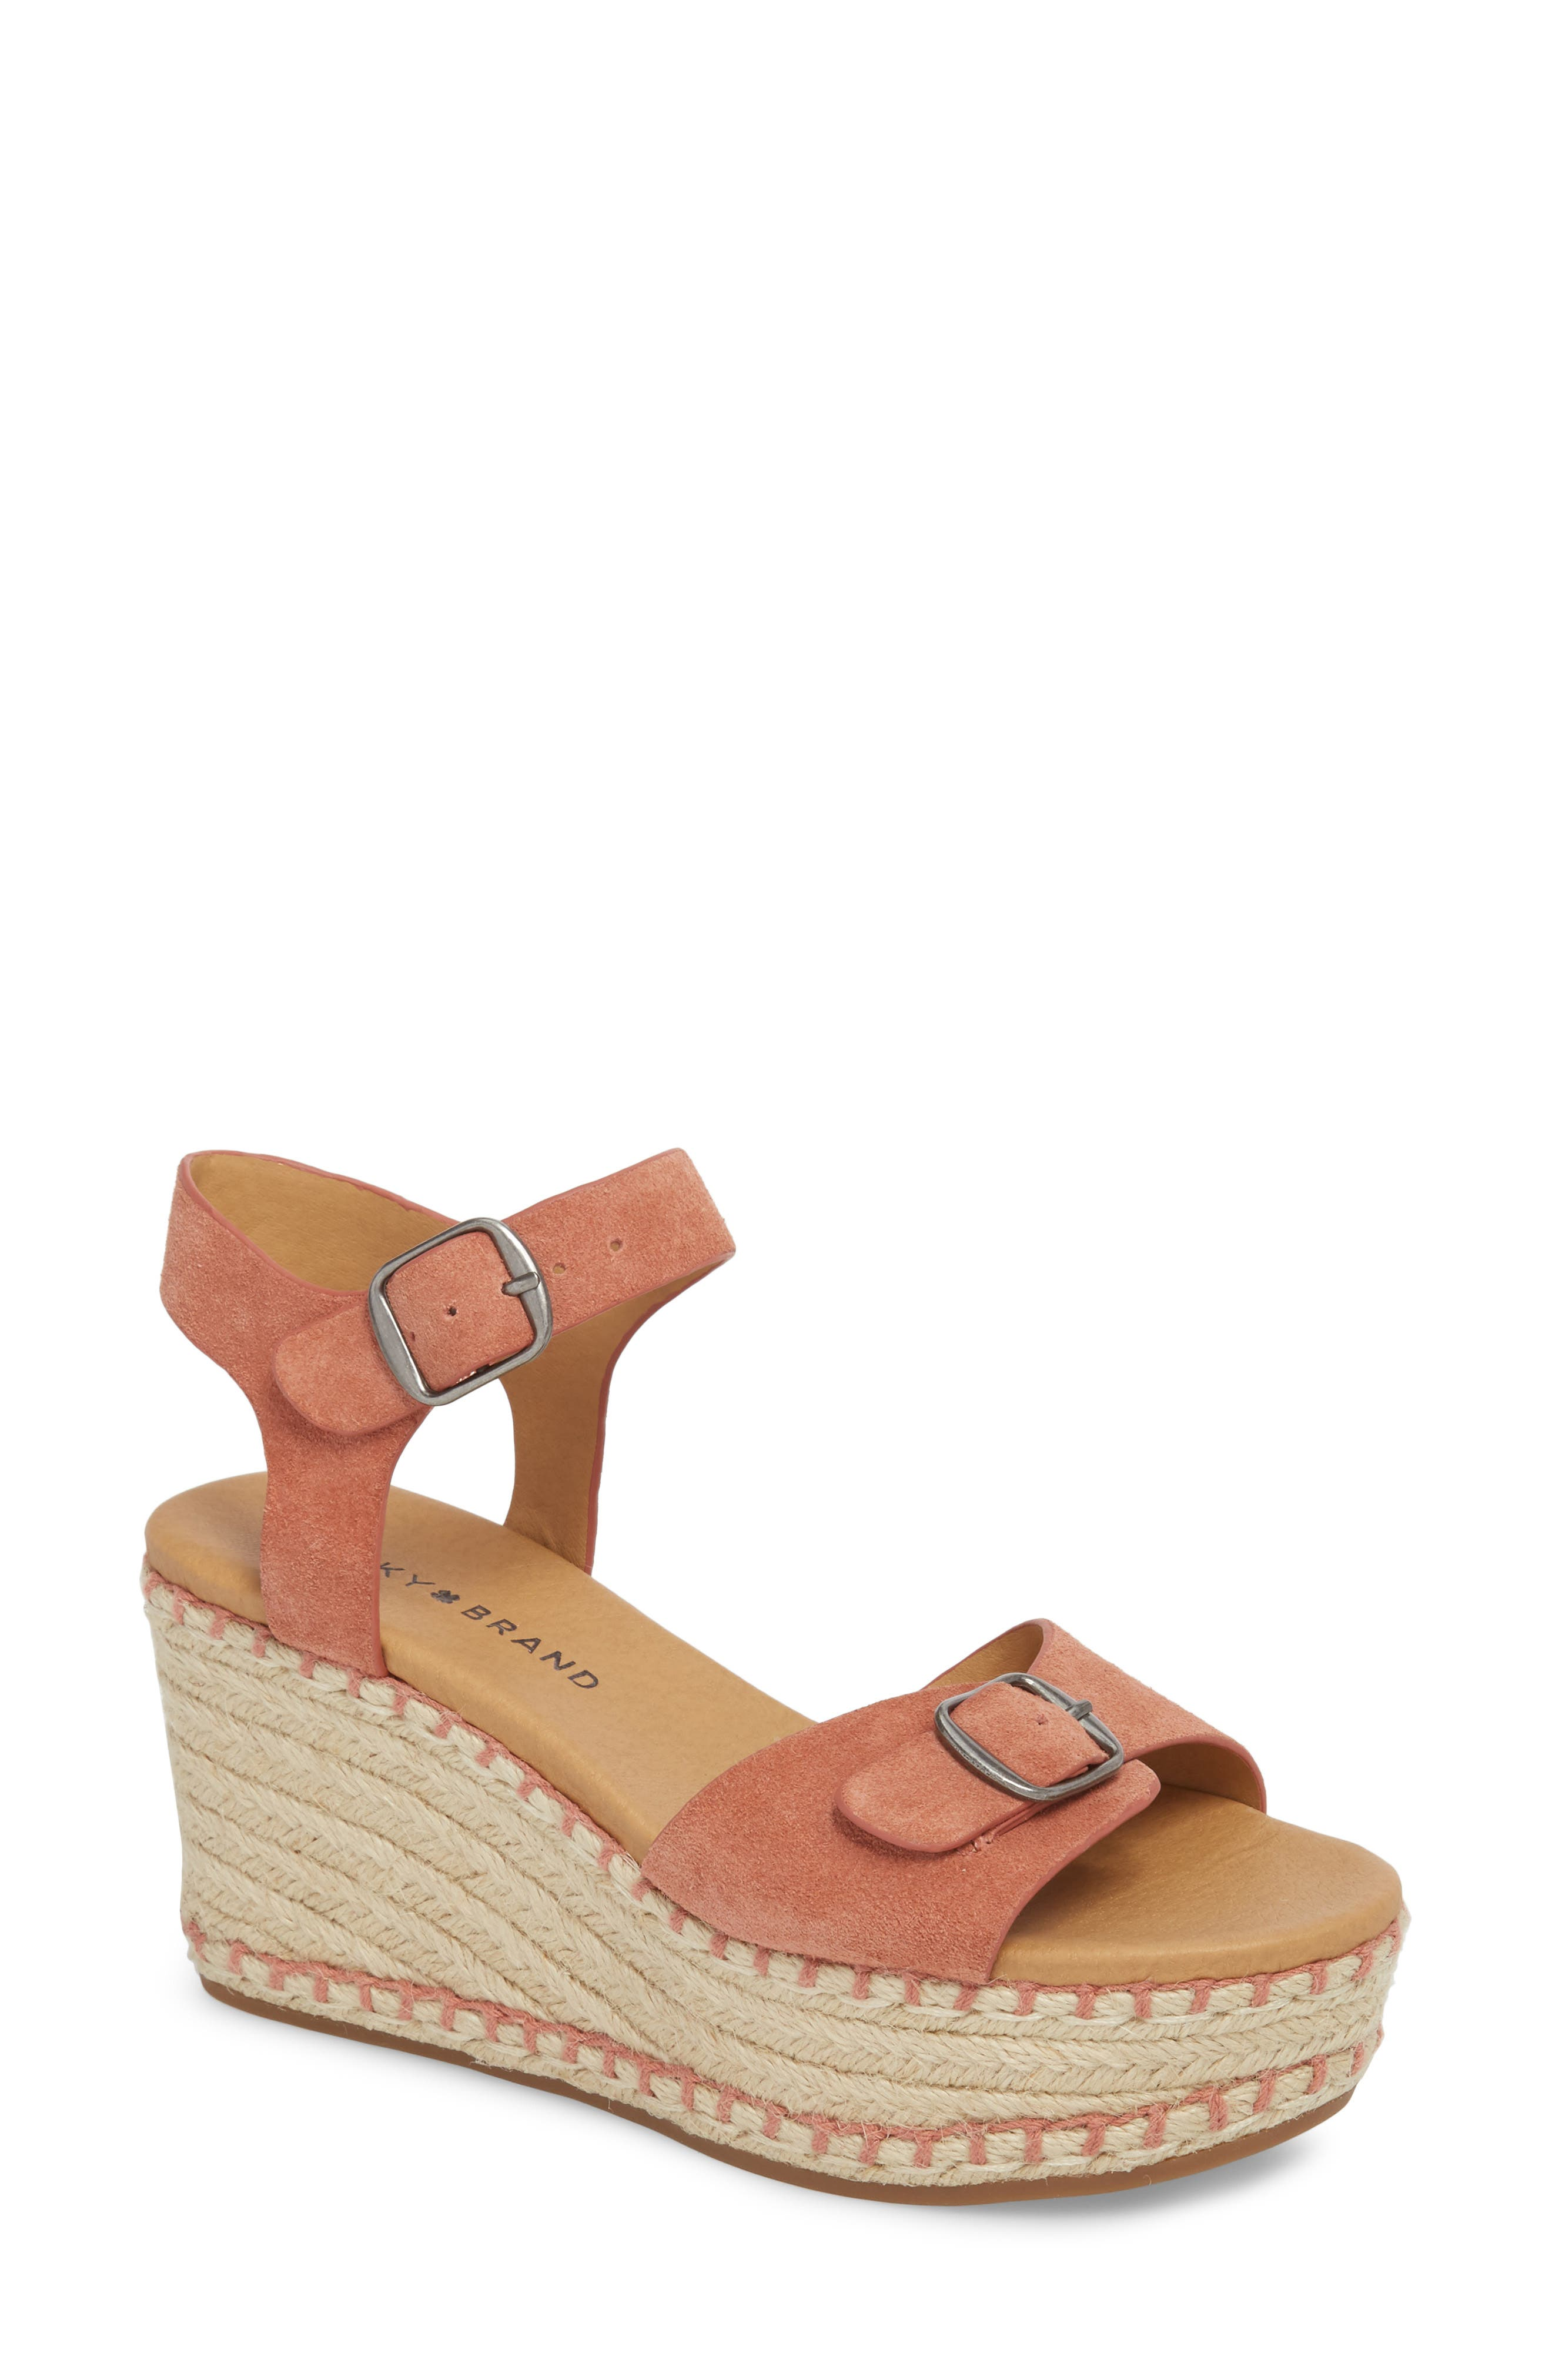 Naveah III Espadrille Wedge Sandal,                         Main,                         color, Canyon Rose Suede